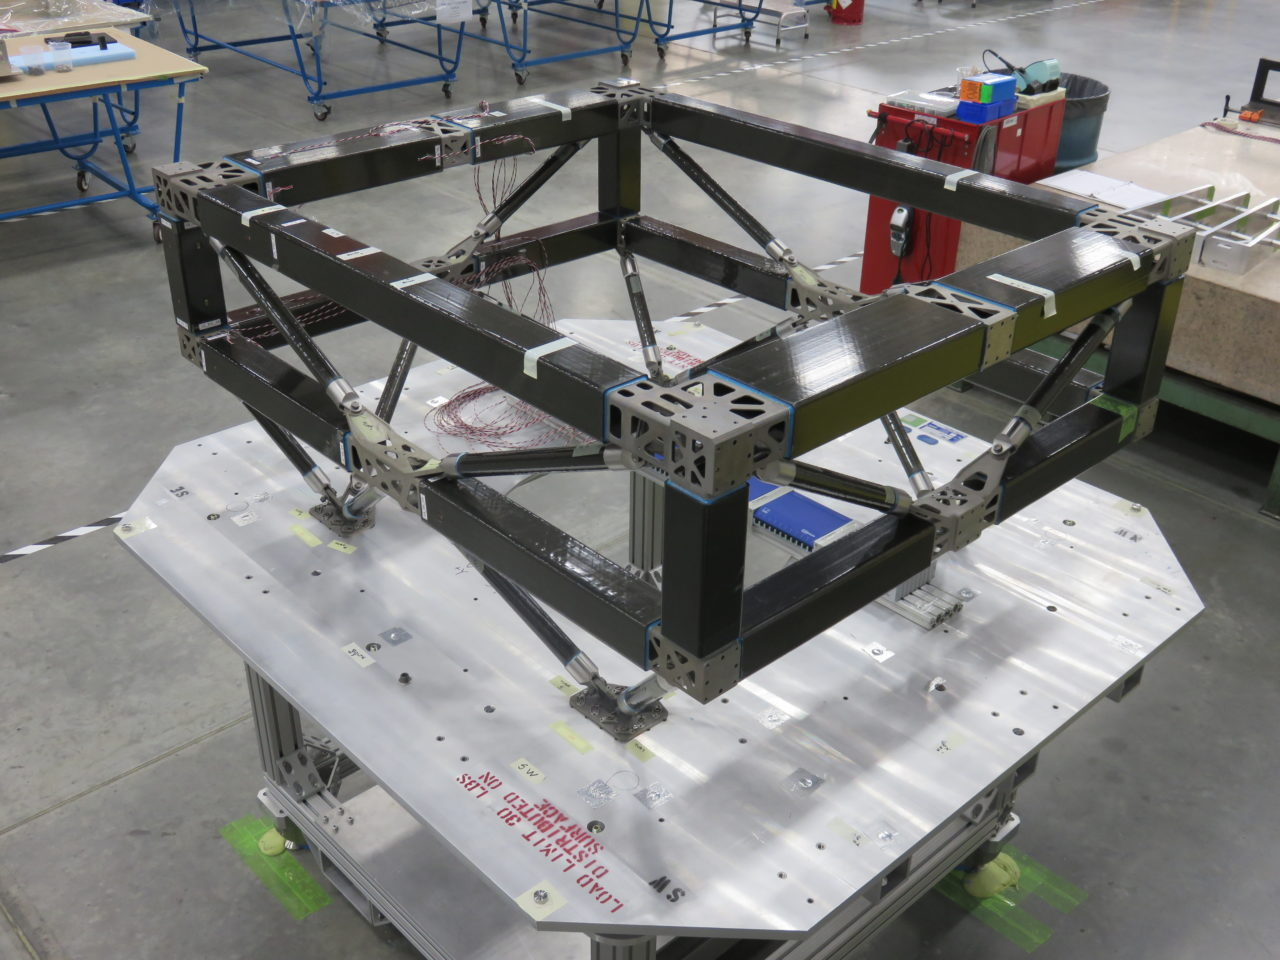 Boeing's 3D printed parts that were incorporated in the SES 15 satellite. Photo: Boeing.